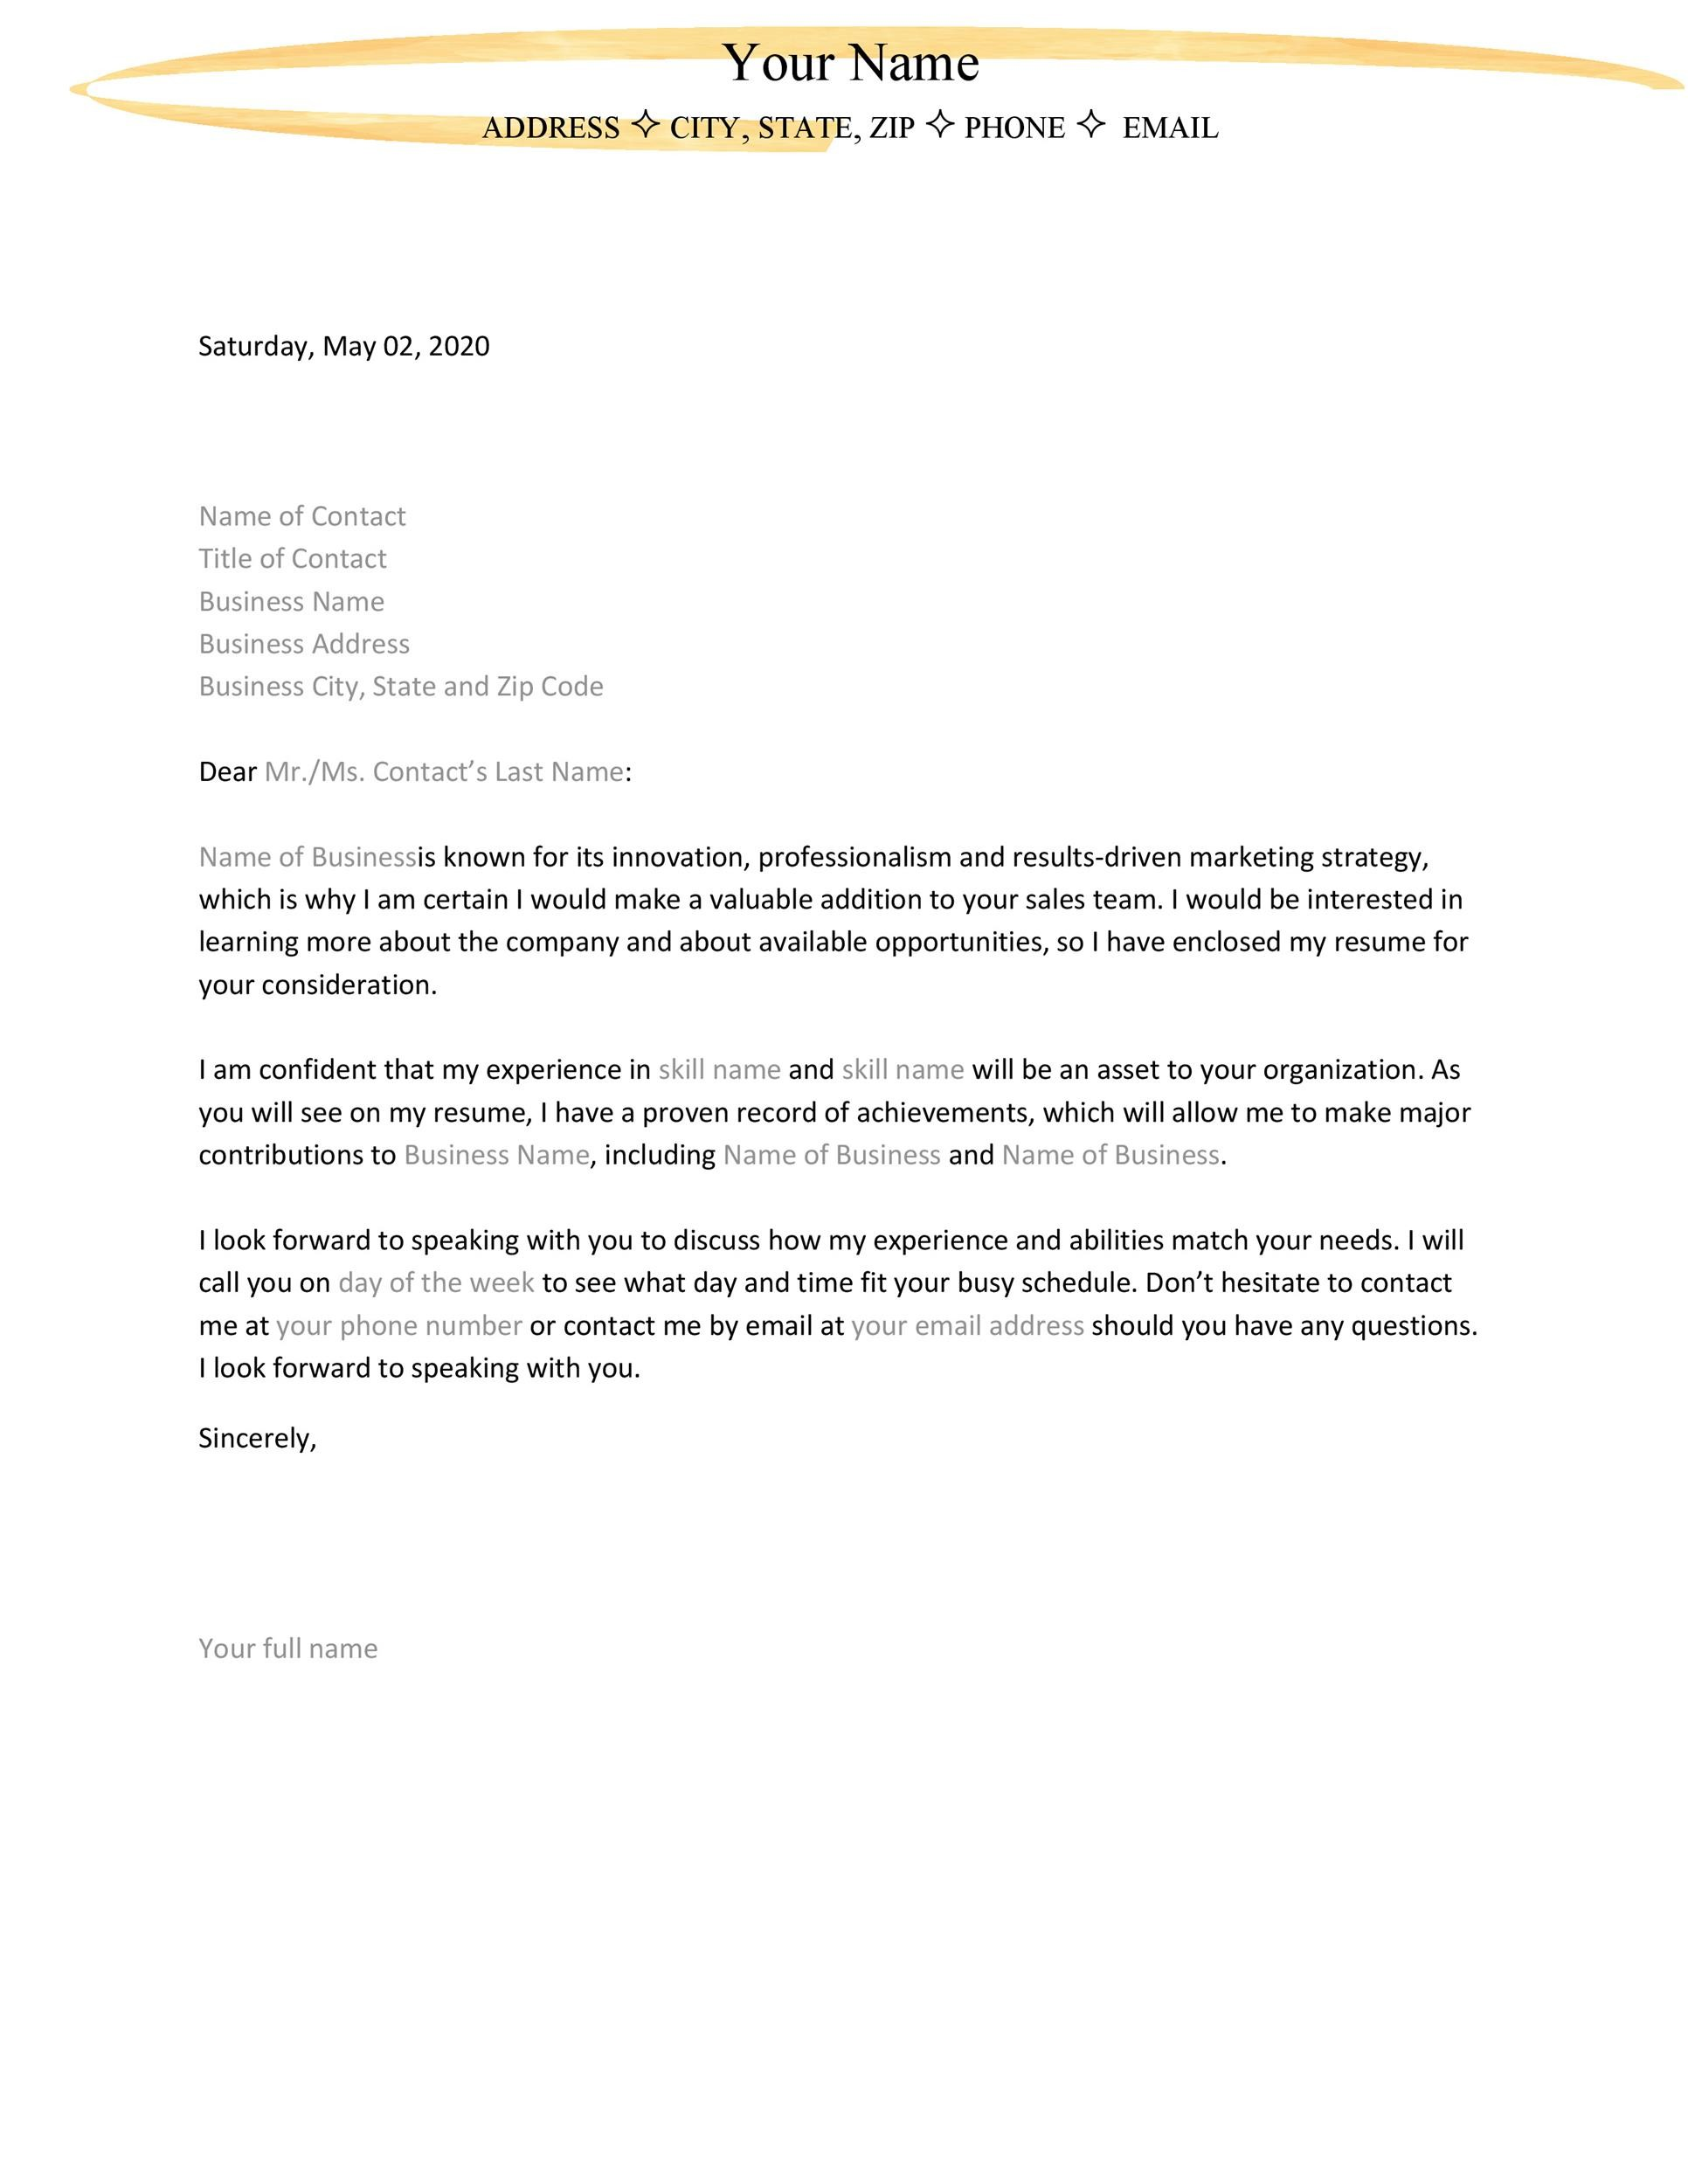 Sample Letter Of Interest To Purchase Land from templatelab.com